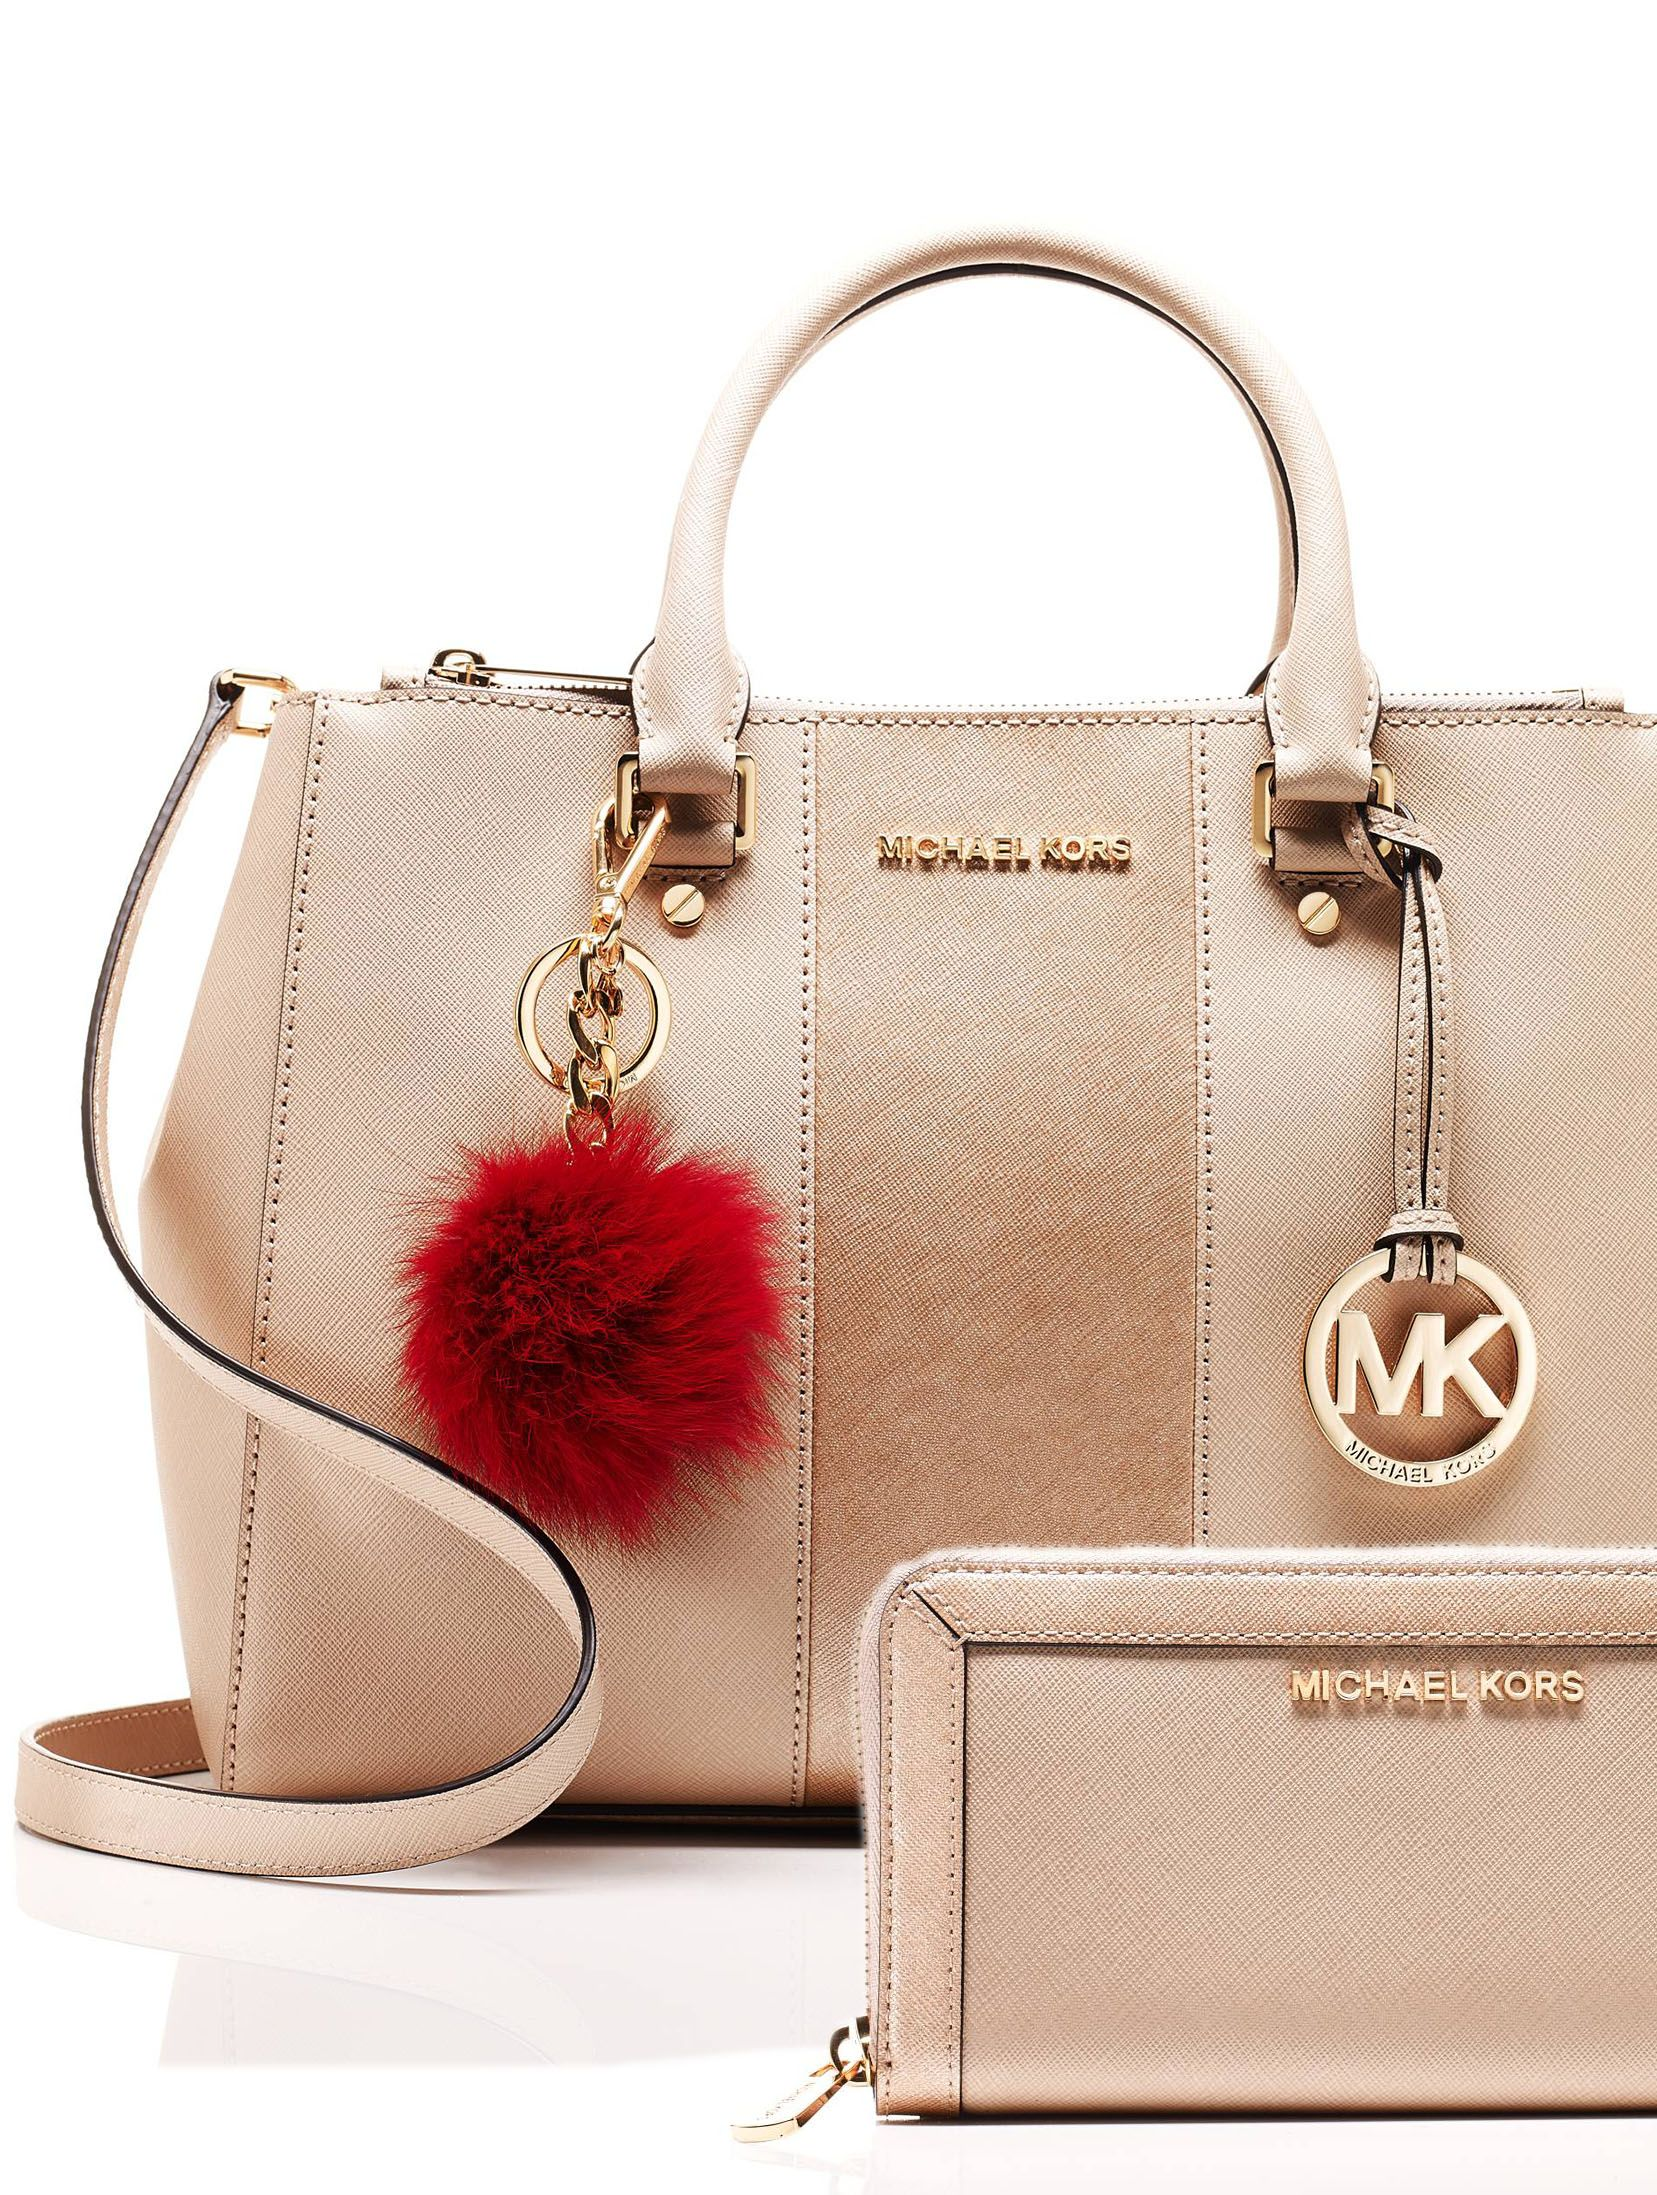 Michael kors bags in dubai - Mix And Match A Michael Michael Kors Handbag Wallet And Pom Charm To Create Her